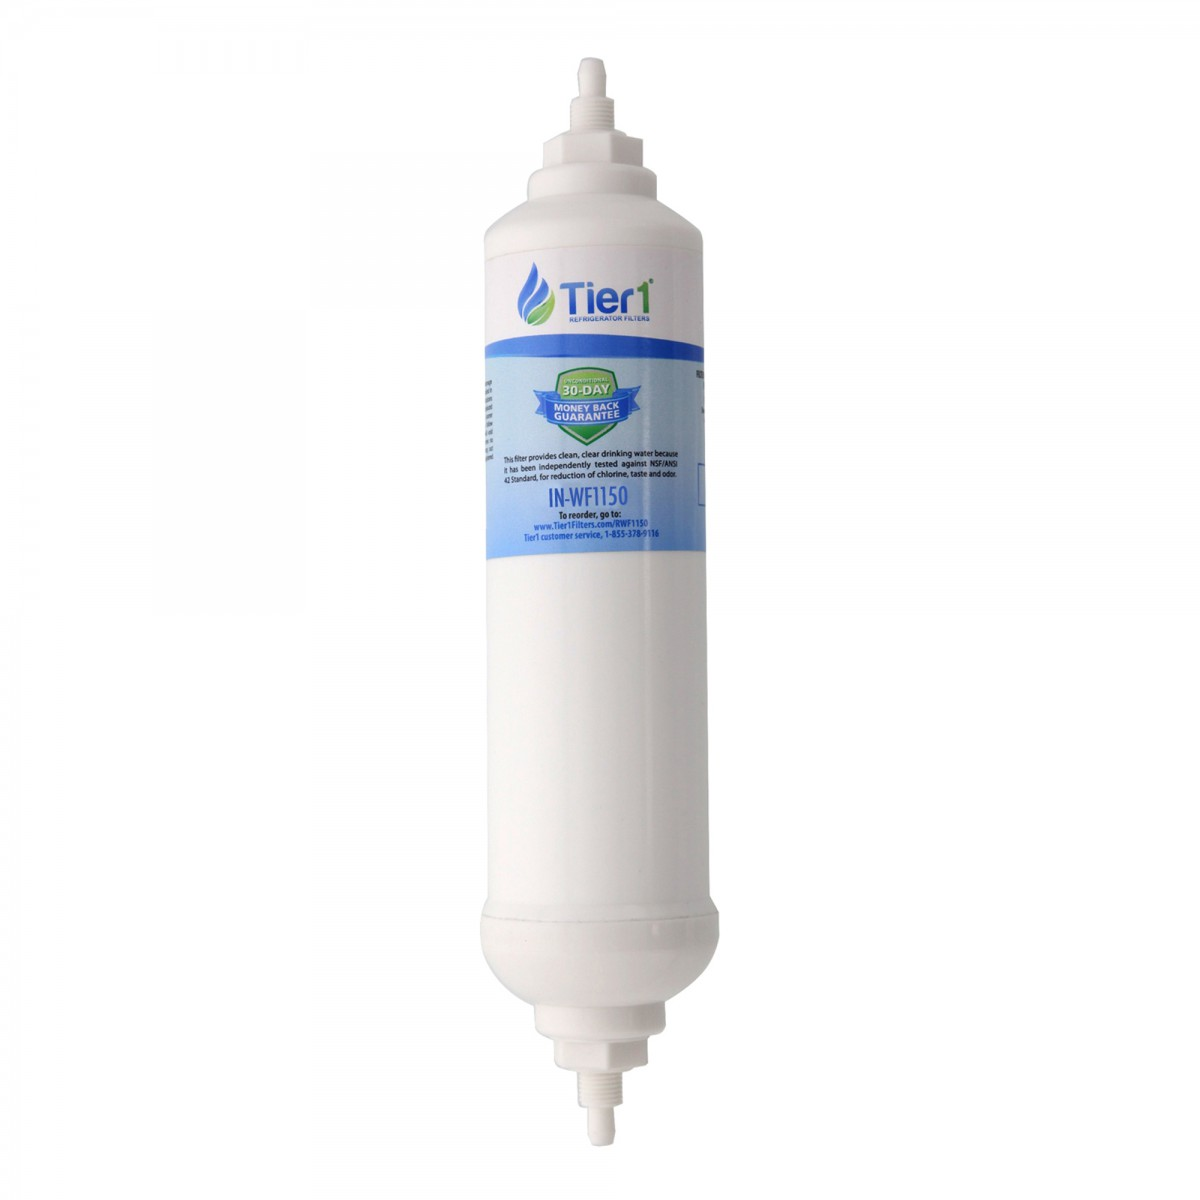 samsung da2910105j comparable inline water filter cartridge by tier1 - Water Filter Cartridge